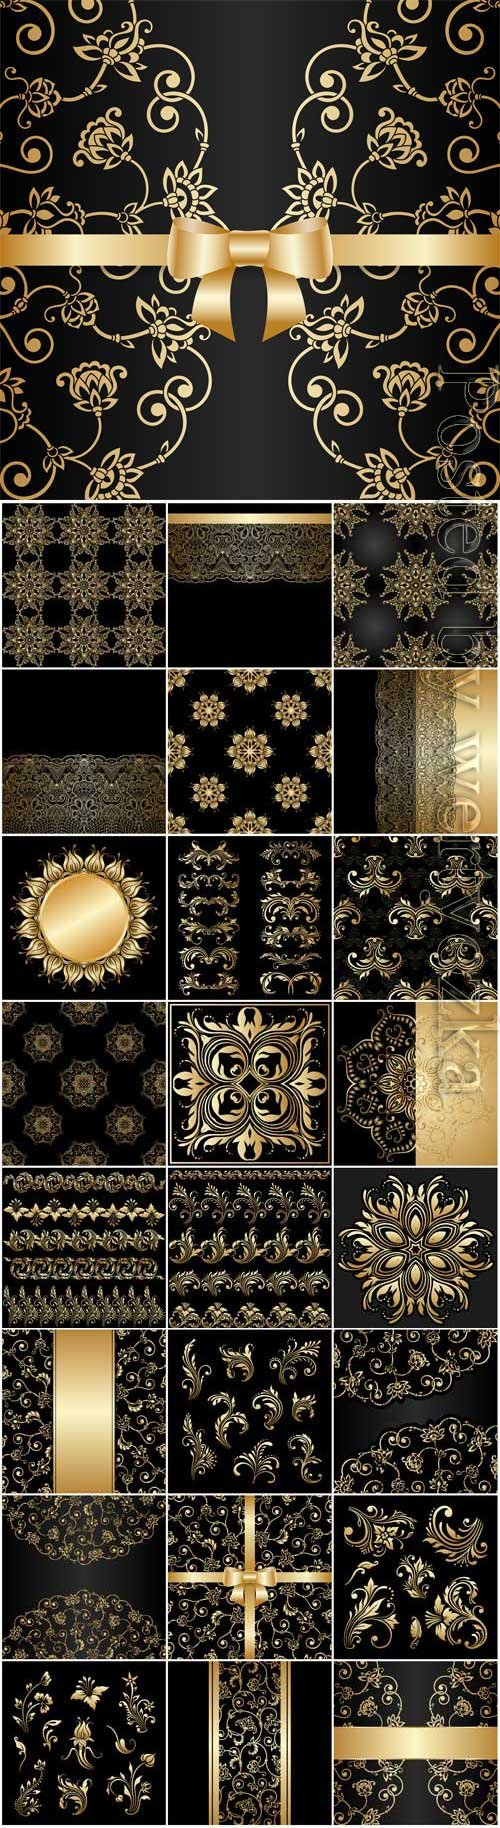 Gold decorative elements and patterns in vector